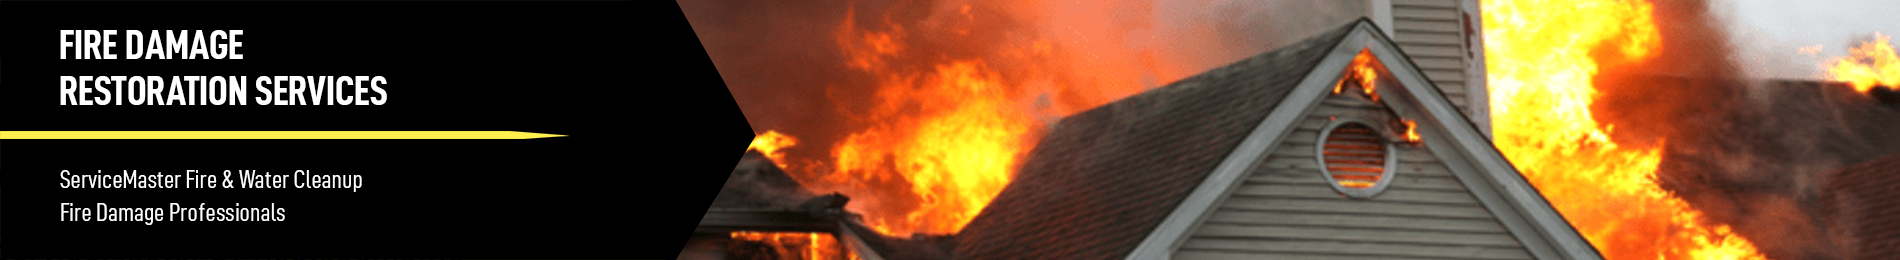 ServiceMaster-FIre-Water-Cleanup-Fire-Damage-Restoration